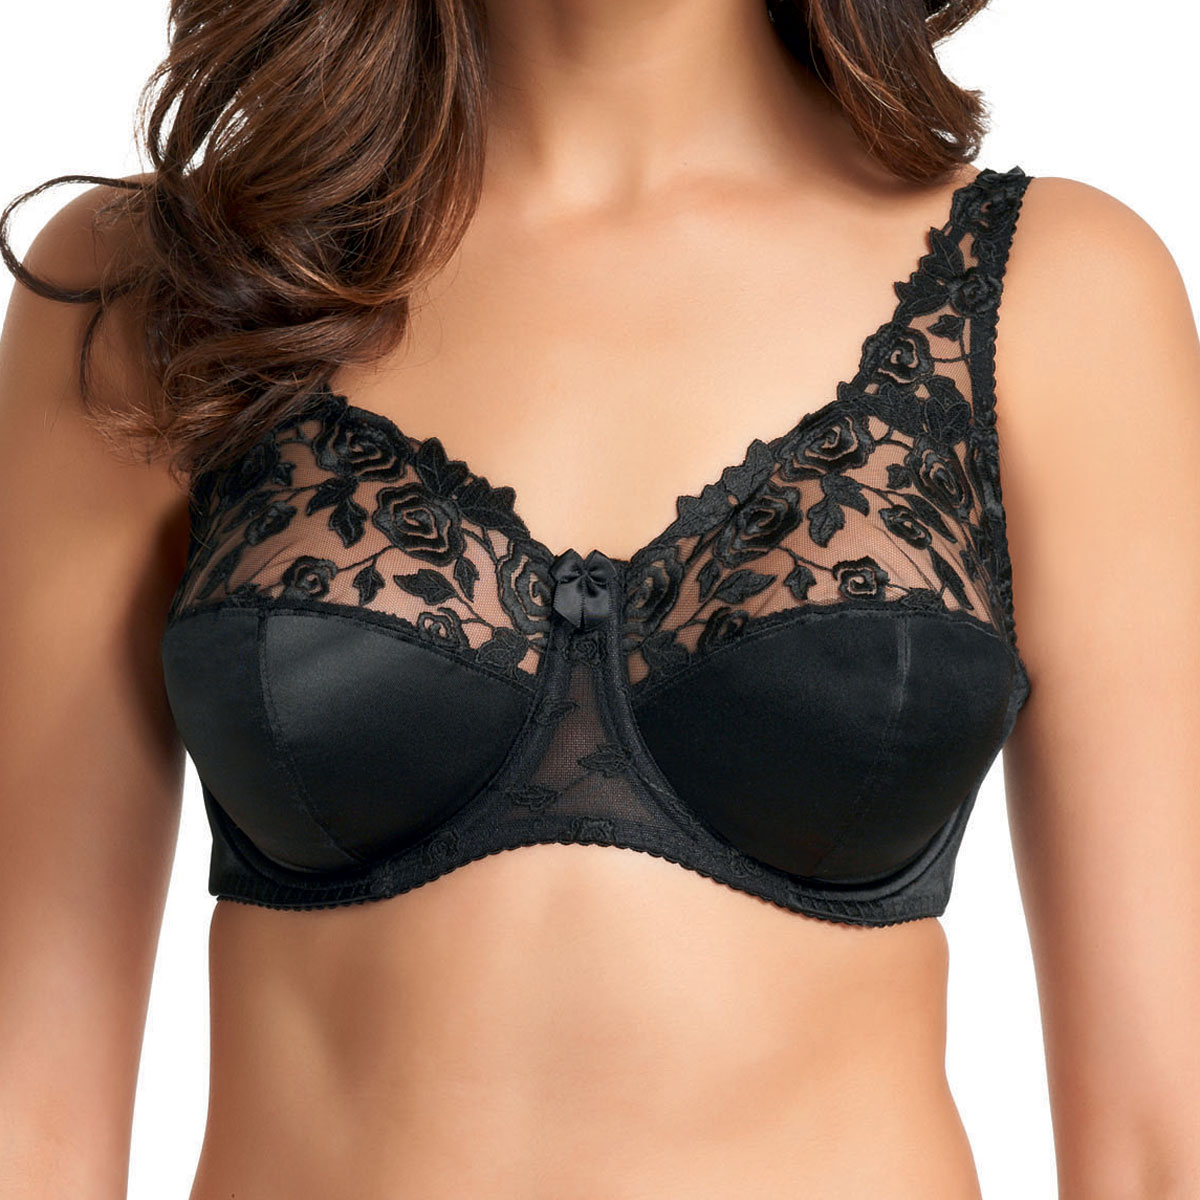 1d5b567dc2 New Fantasie Belle Underwire Full Cup Bra Black 6001 Various Sizes GG to JJ